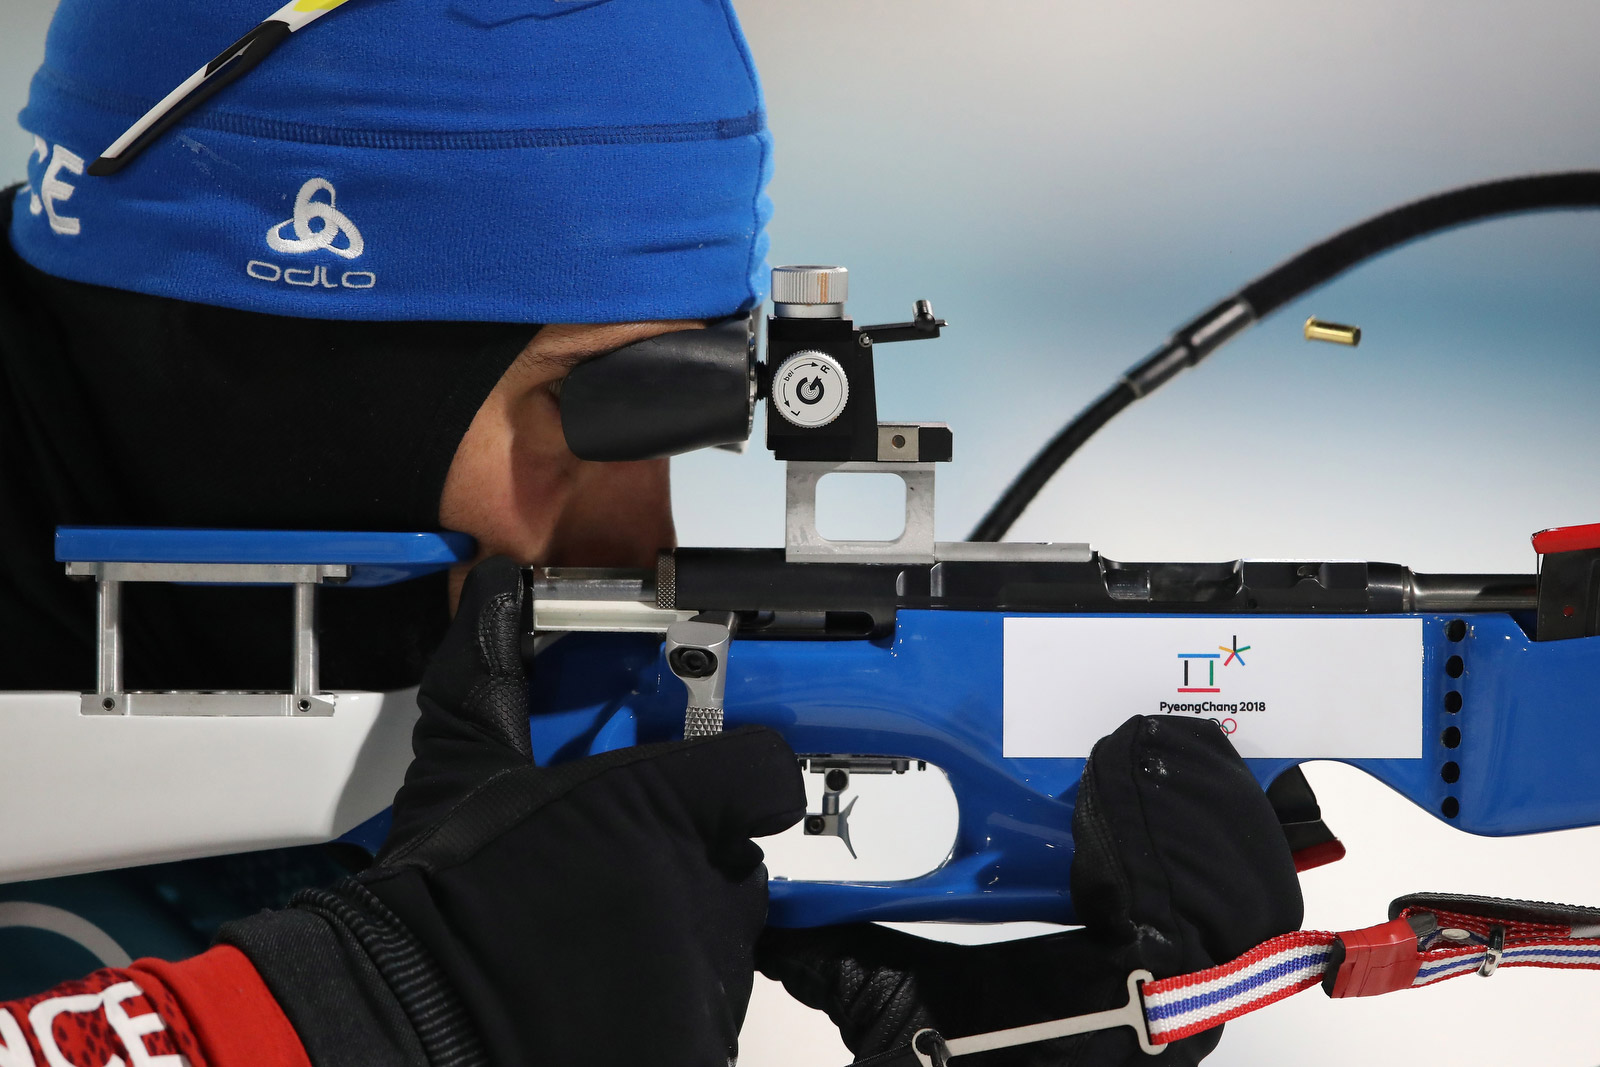 A bullet shell flies from the rifle of French biathlete Martin Fourcade, who won the 12-kilometer pursuit on February 12. It's the third gold medal of Fourcade's career and the fifth medal in all. He is the most decorated French athlete in Winter Olympics history. Sean M. Haffey/Getty Images